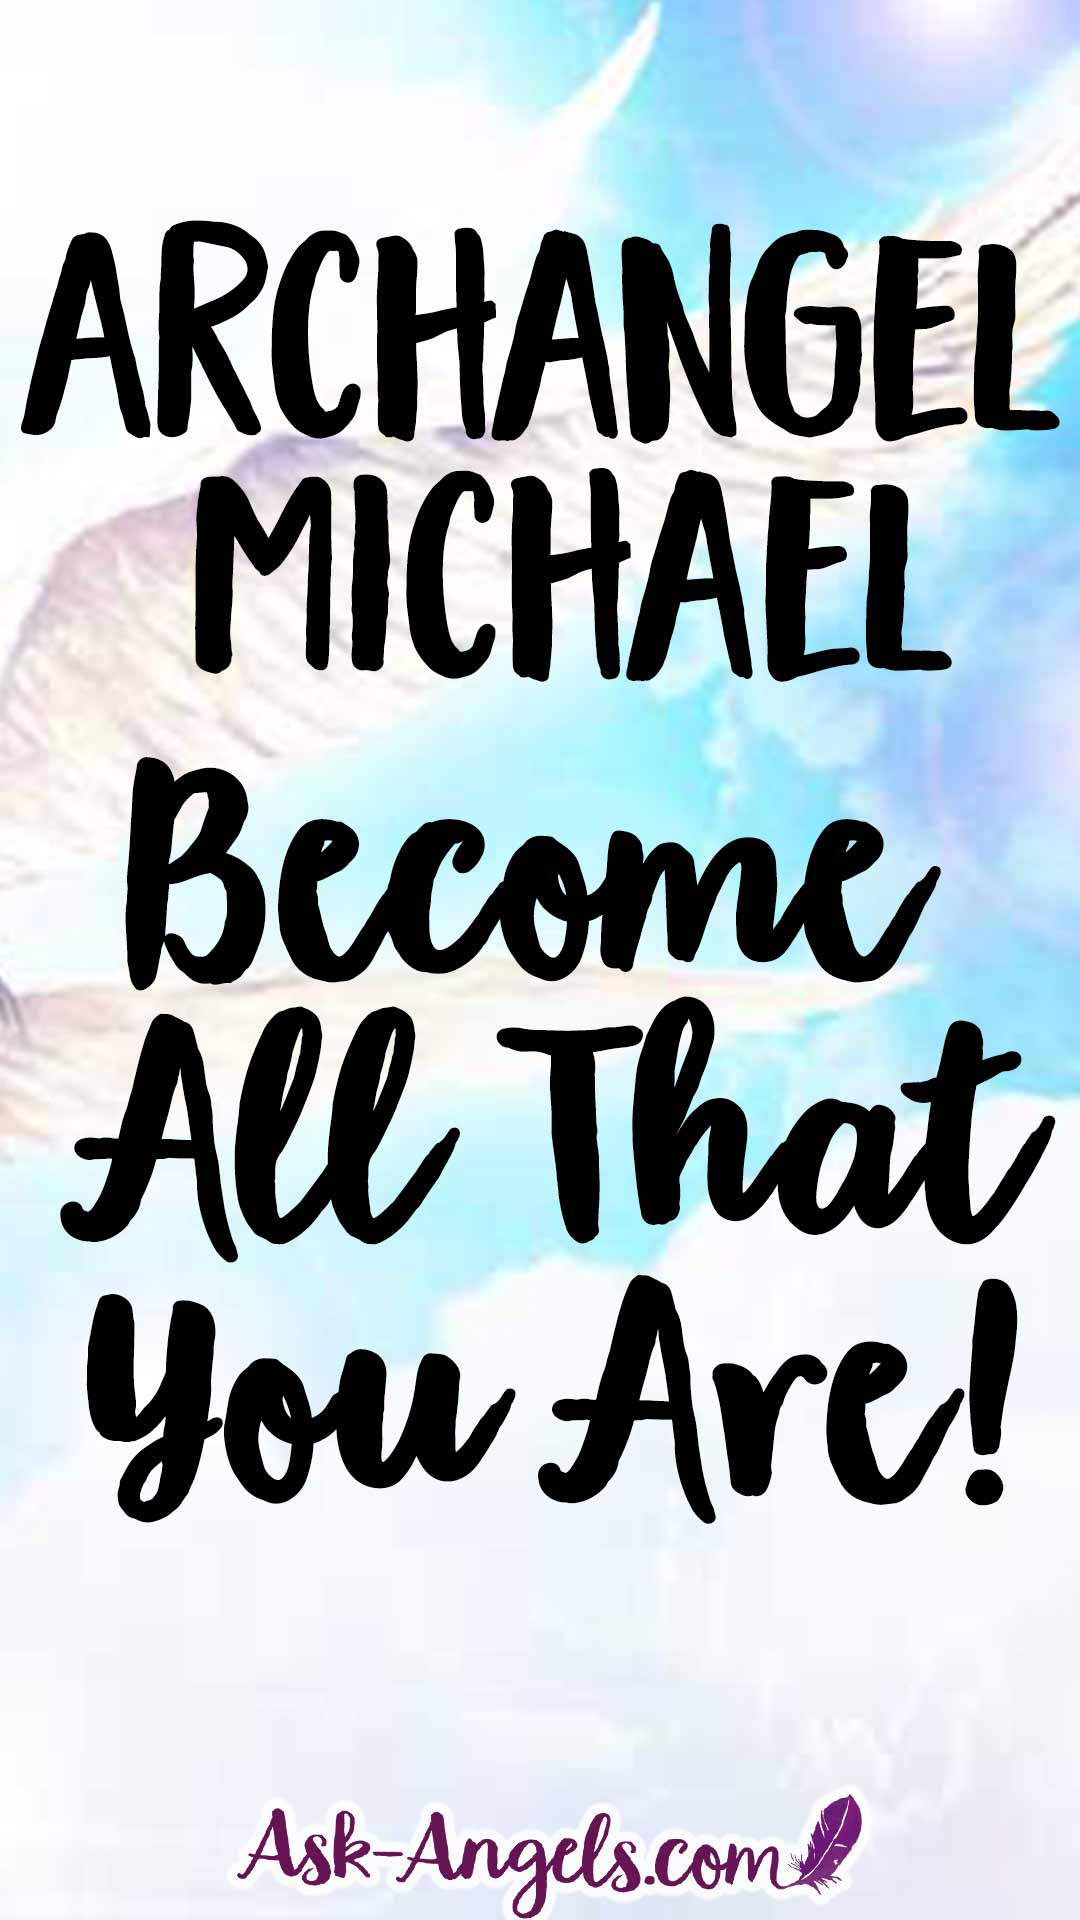 Archangel Michael Message - Become All That You Are